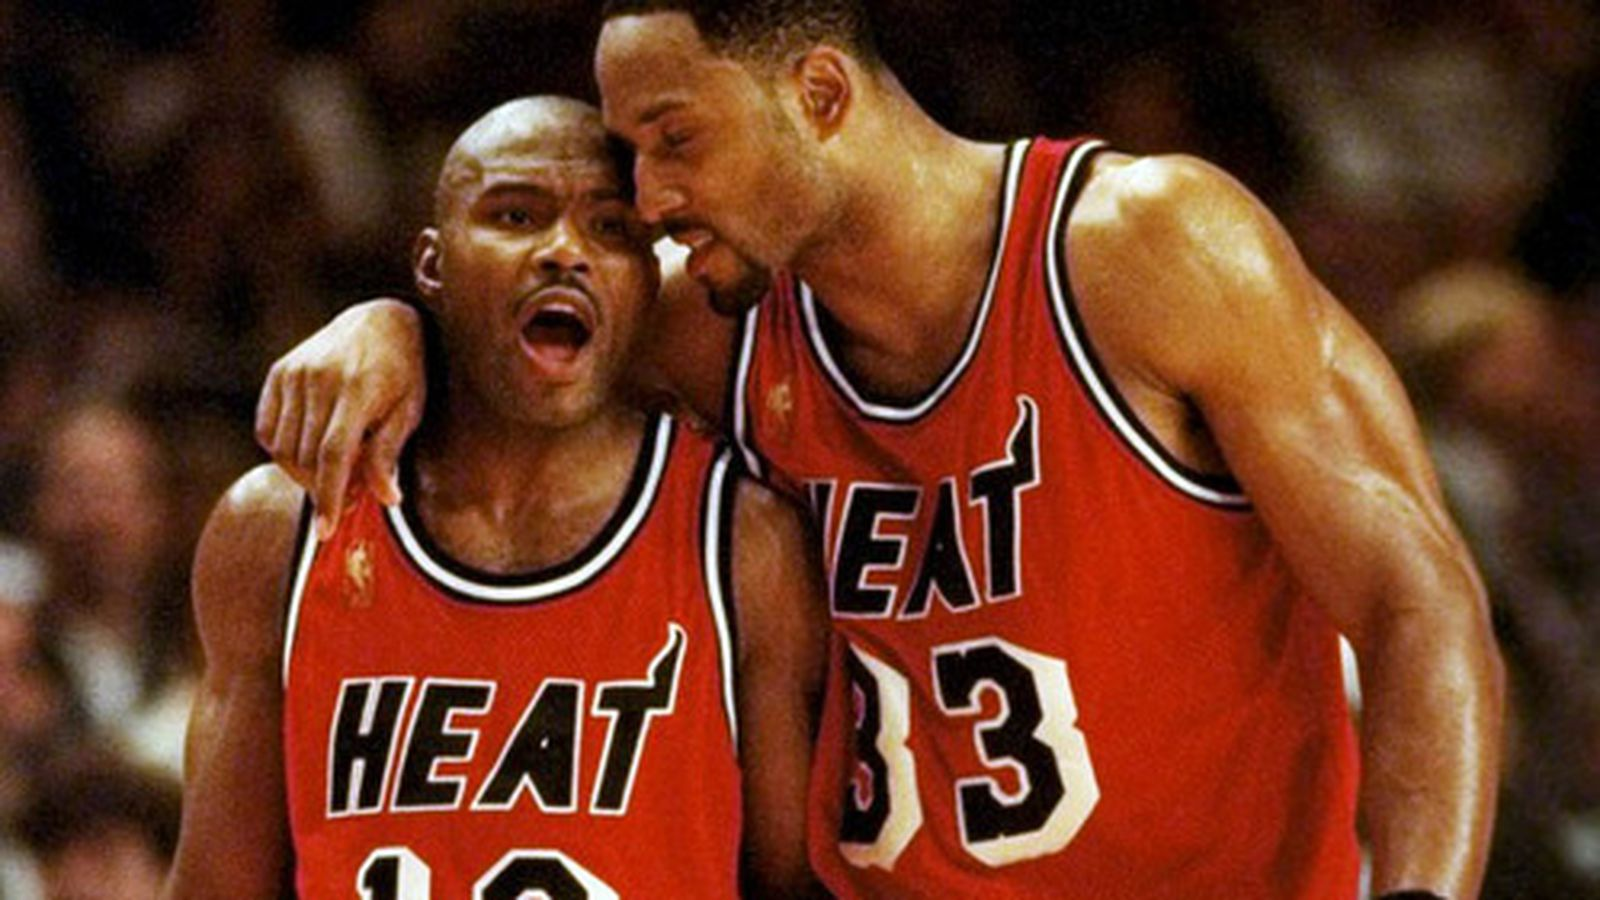 Heat Legends Tim Hardaway and Alonzo Mourning named Hall of Fame Finalists - Hot Hot Hoops